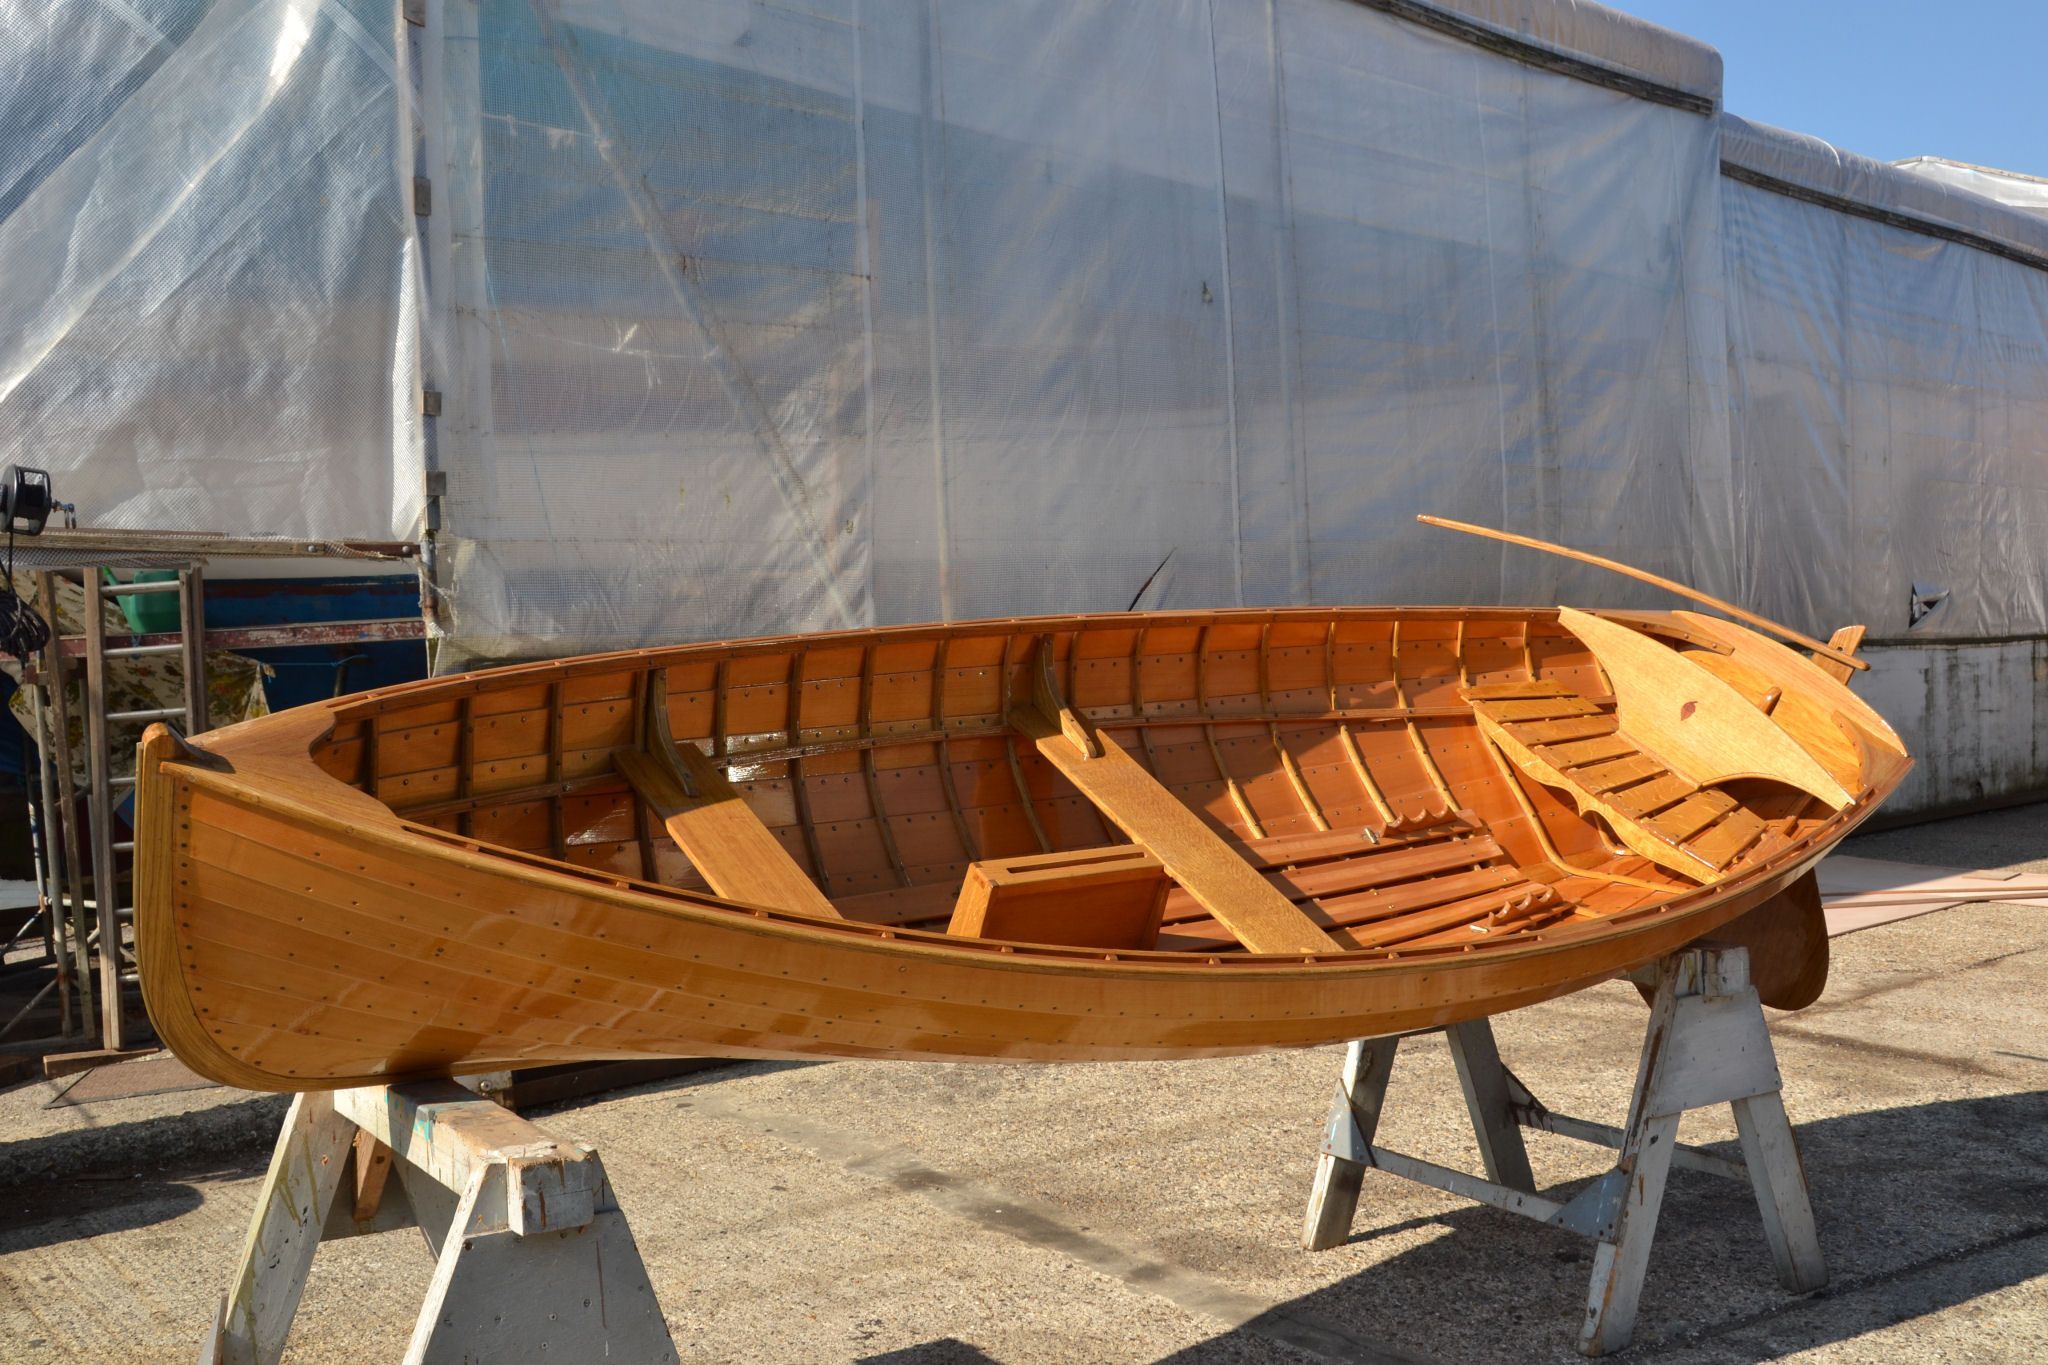 Balsa Wood Boat Plans Here Is Another Source For A Massive Amount Of Project Ideas